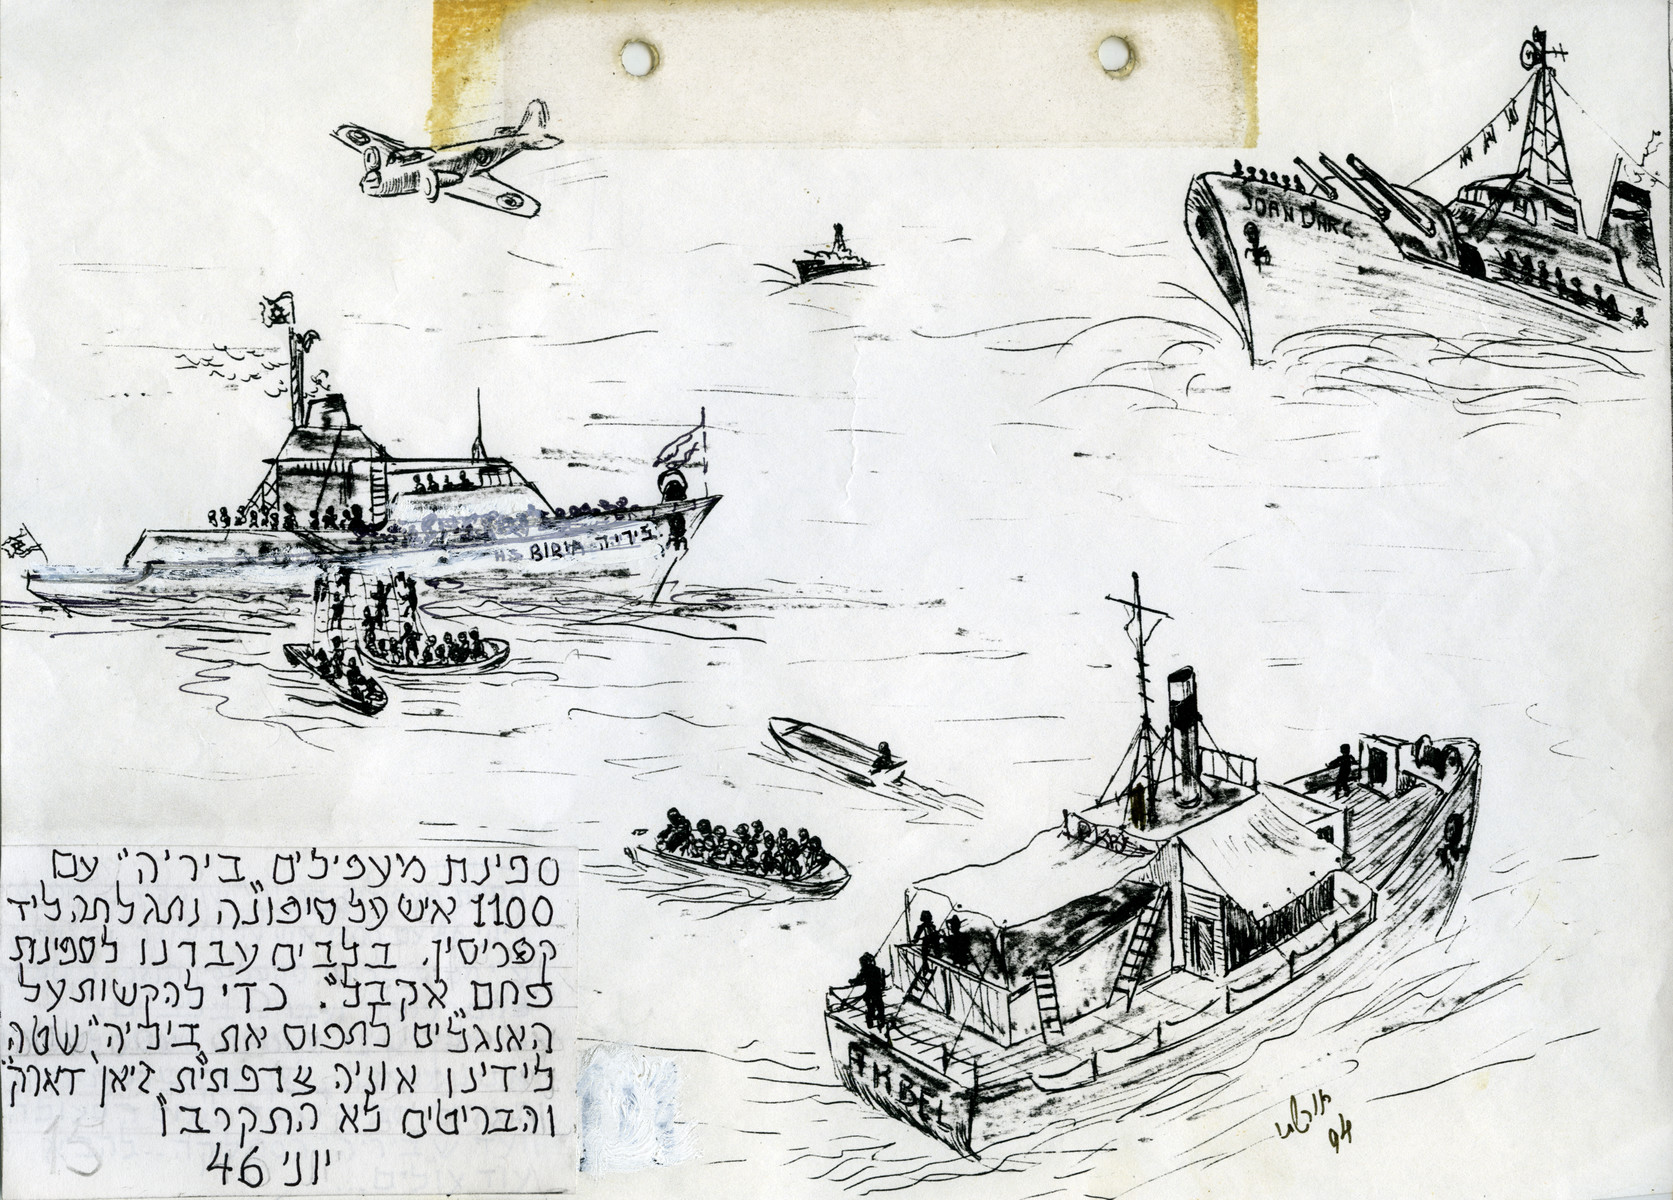 Page of a pictoral memoir drawn by the donor documenting his experiences after the Holocaust.  The drawing depicts the Biriya, a ship carrying 1100 illegal immigrants to Palestine.